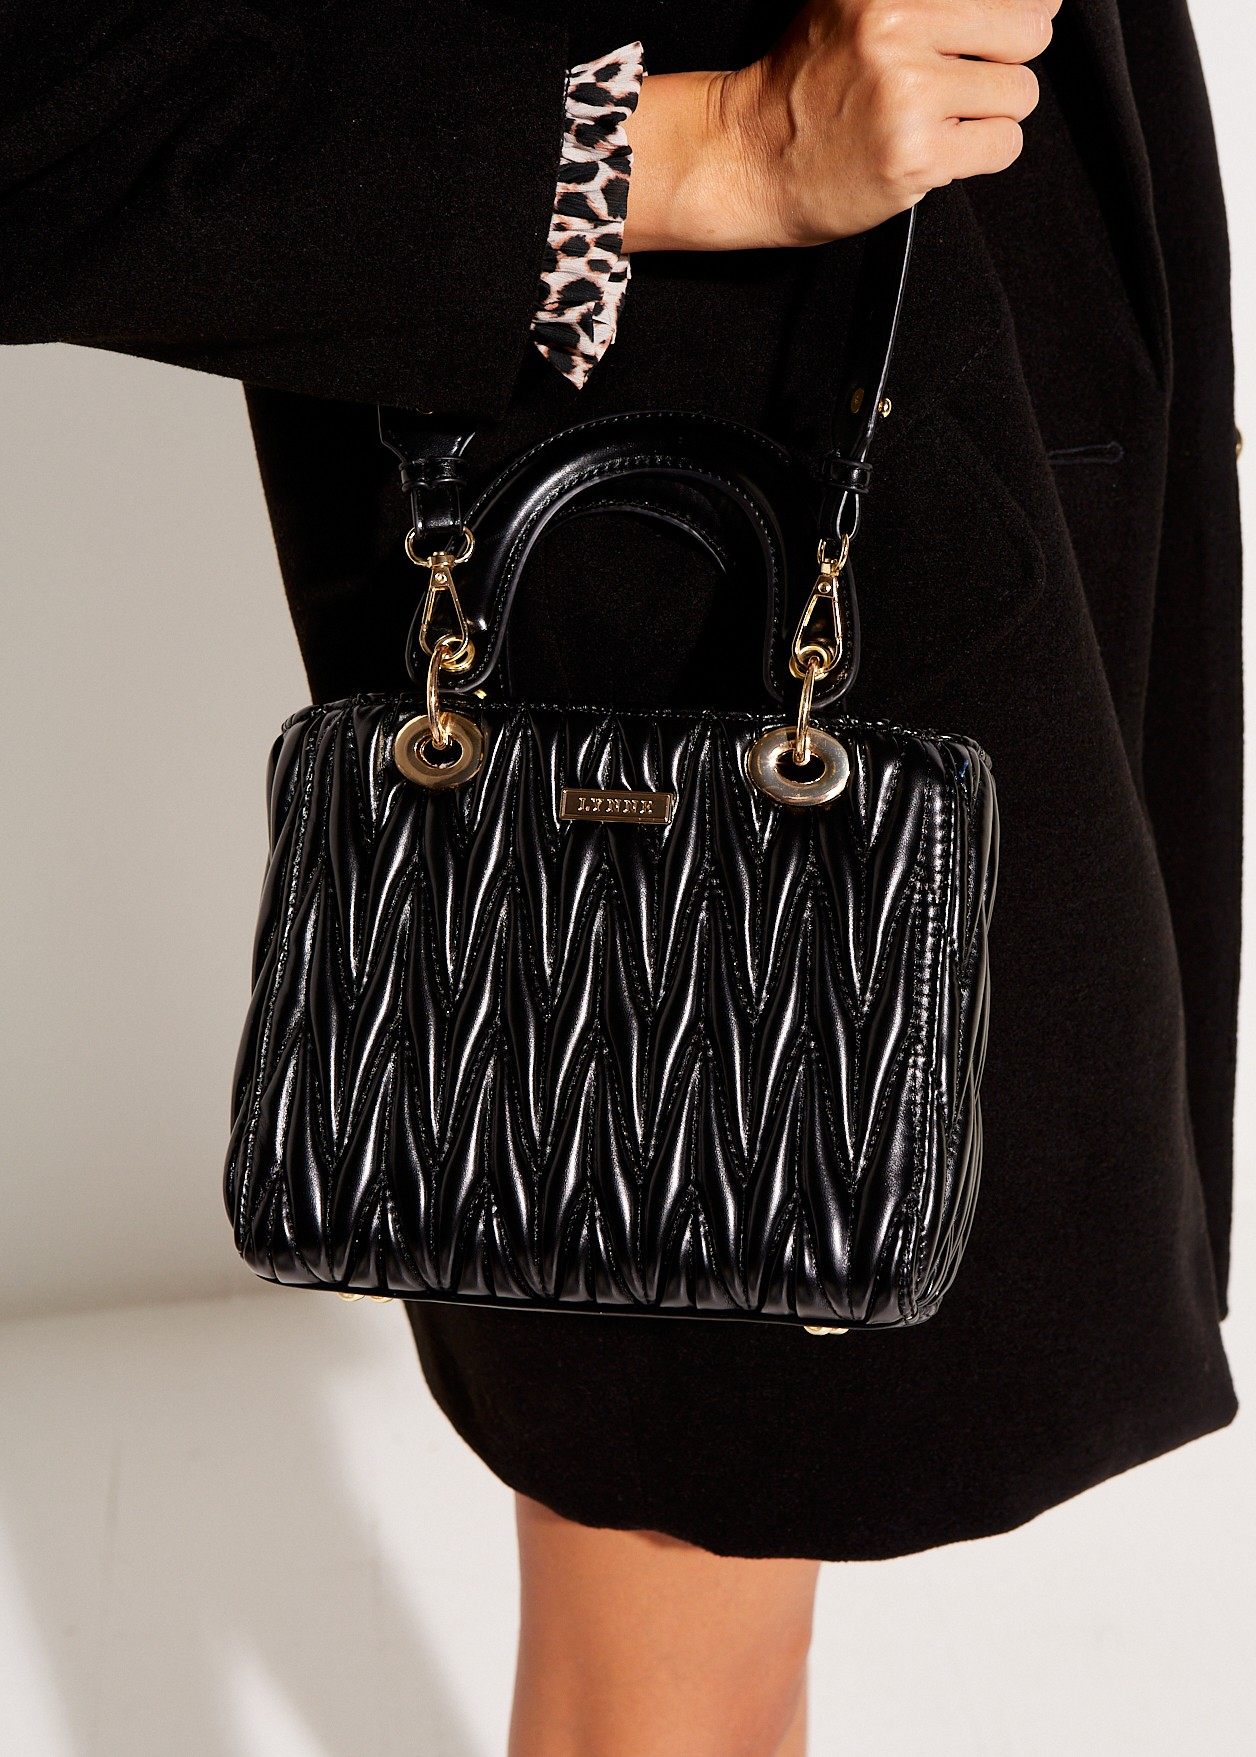 Textured bag with handgrips